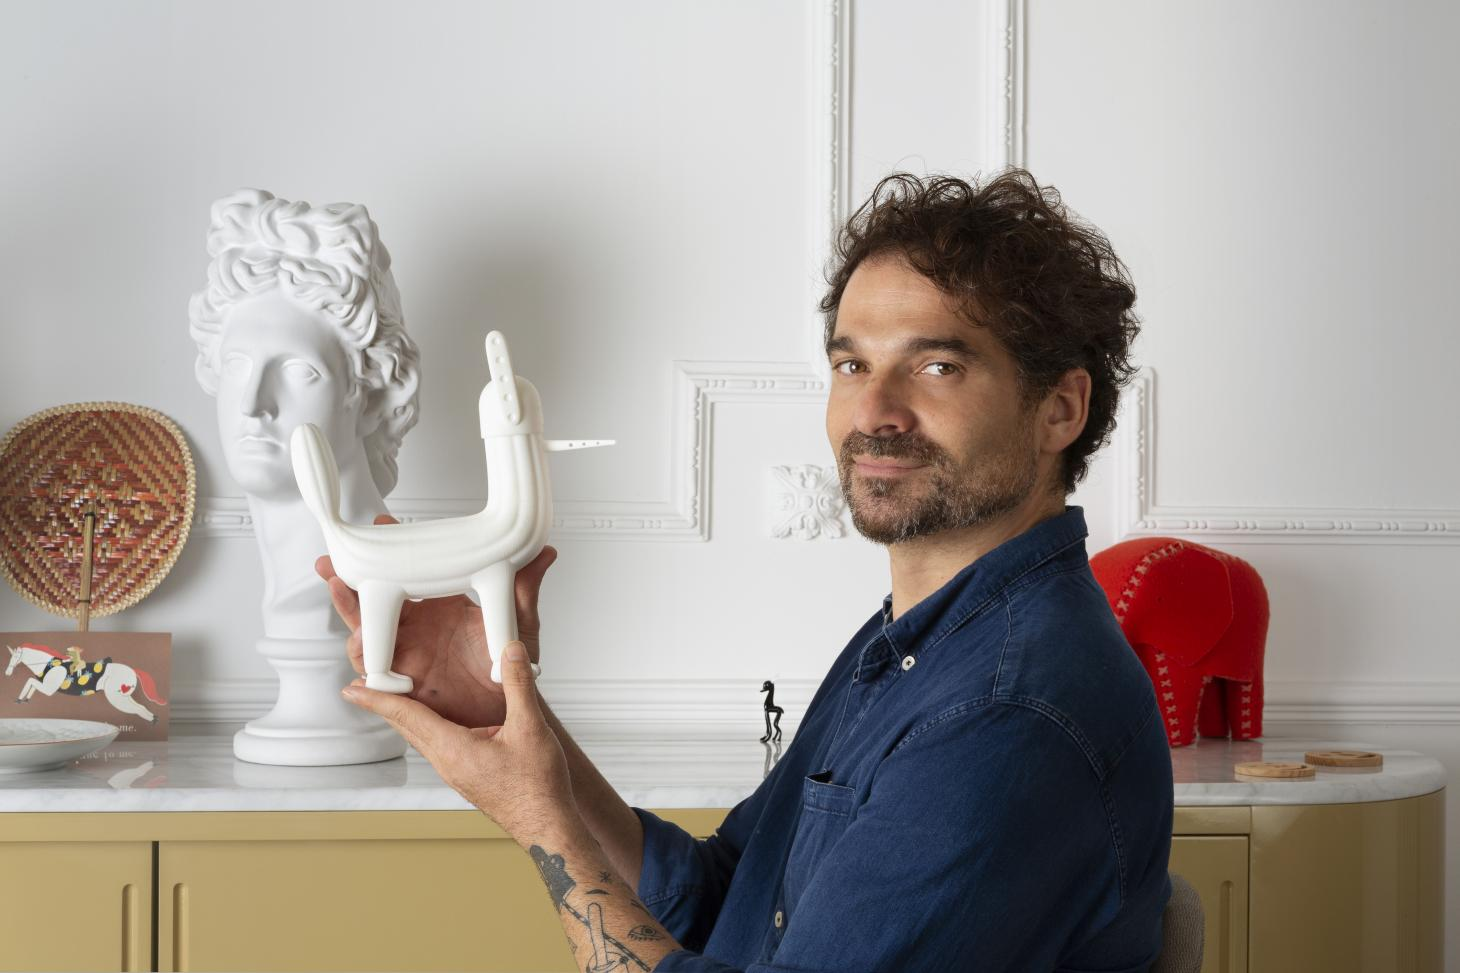 Jaime Hayon at home in Valencia with a miniature figurine that inspired his MOKA Playground design